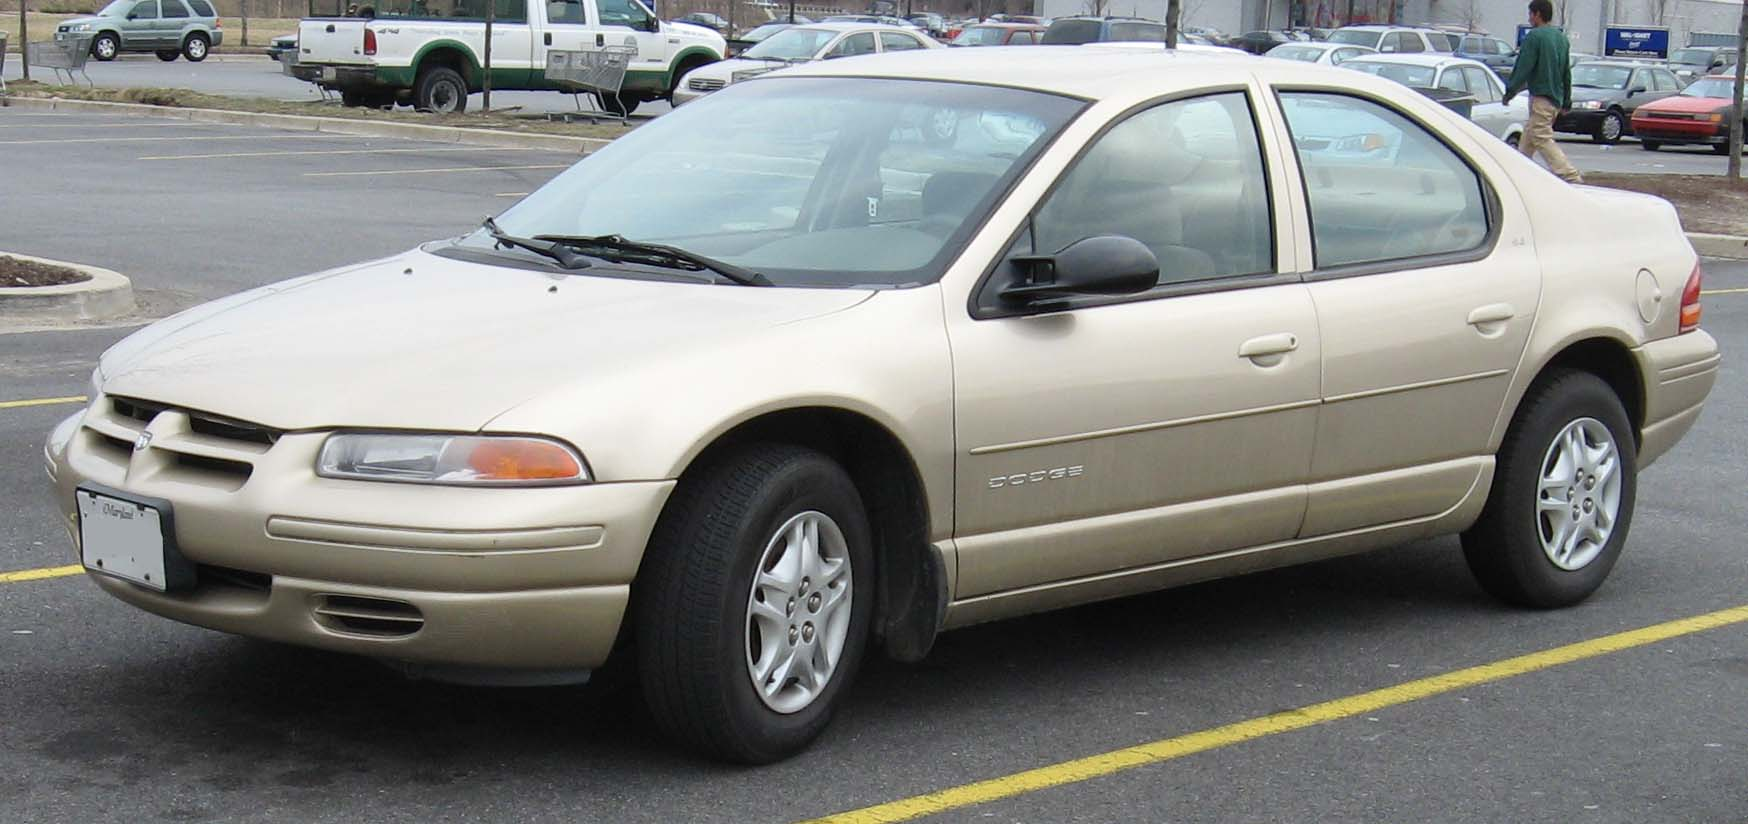 File:1st Dodge Stratus.jpg - Wikimedia Commons